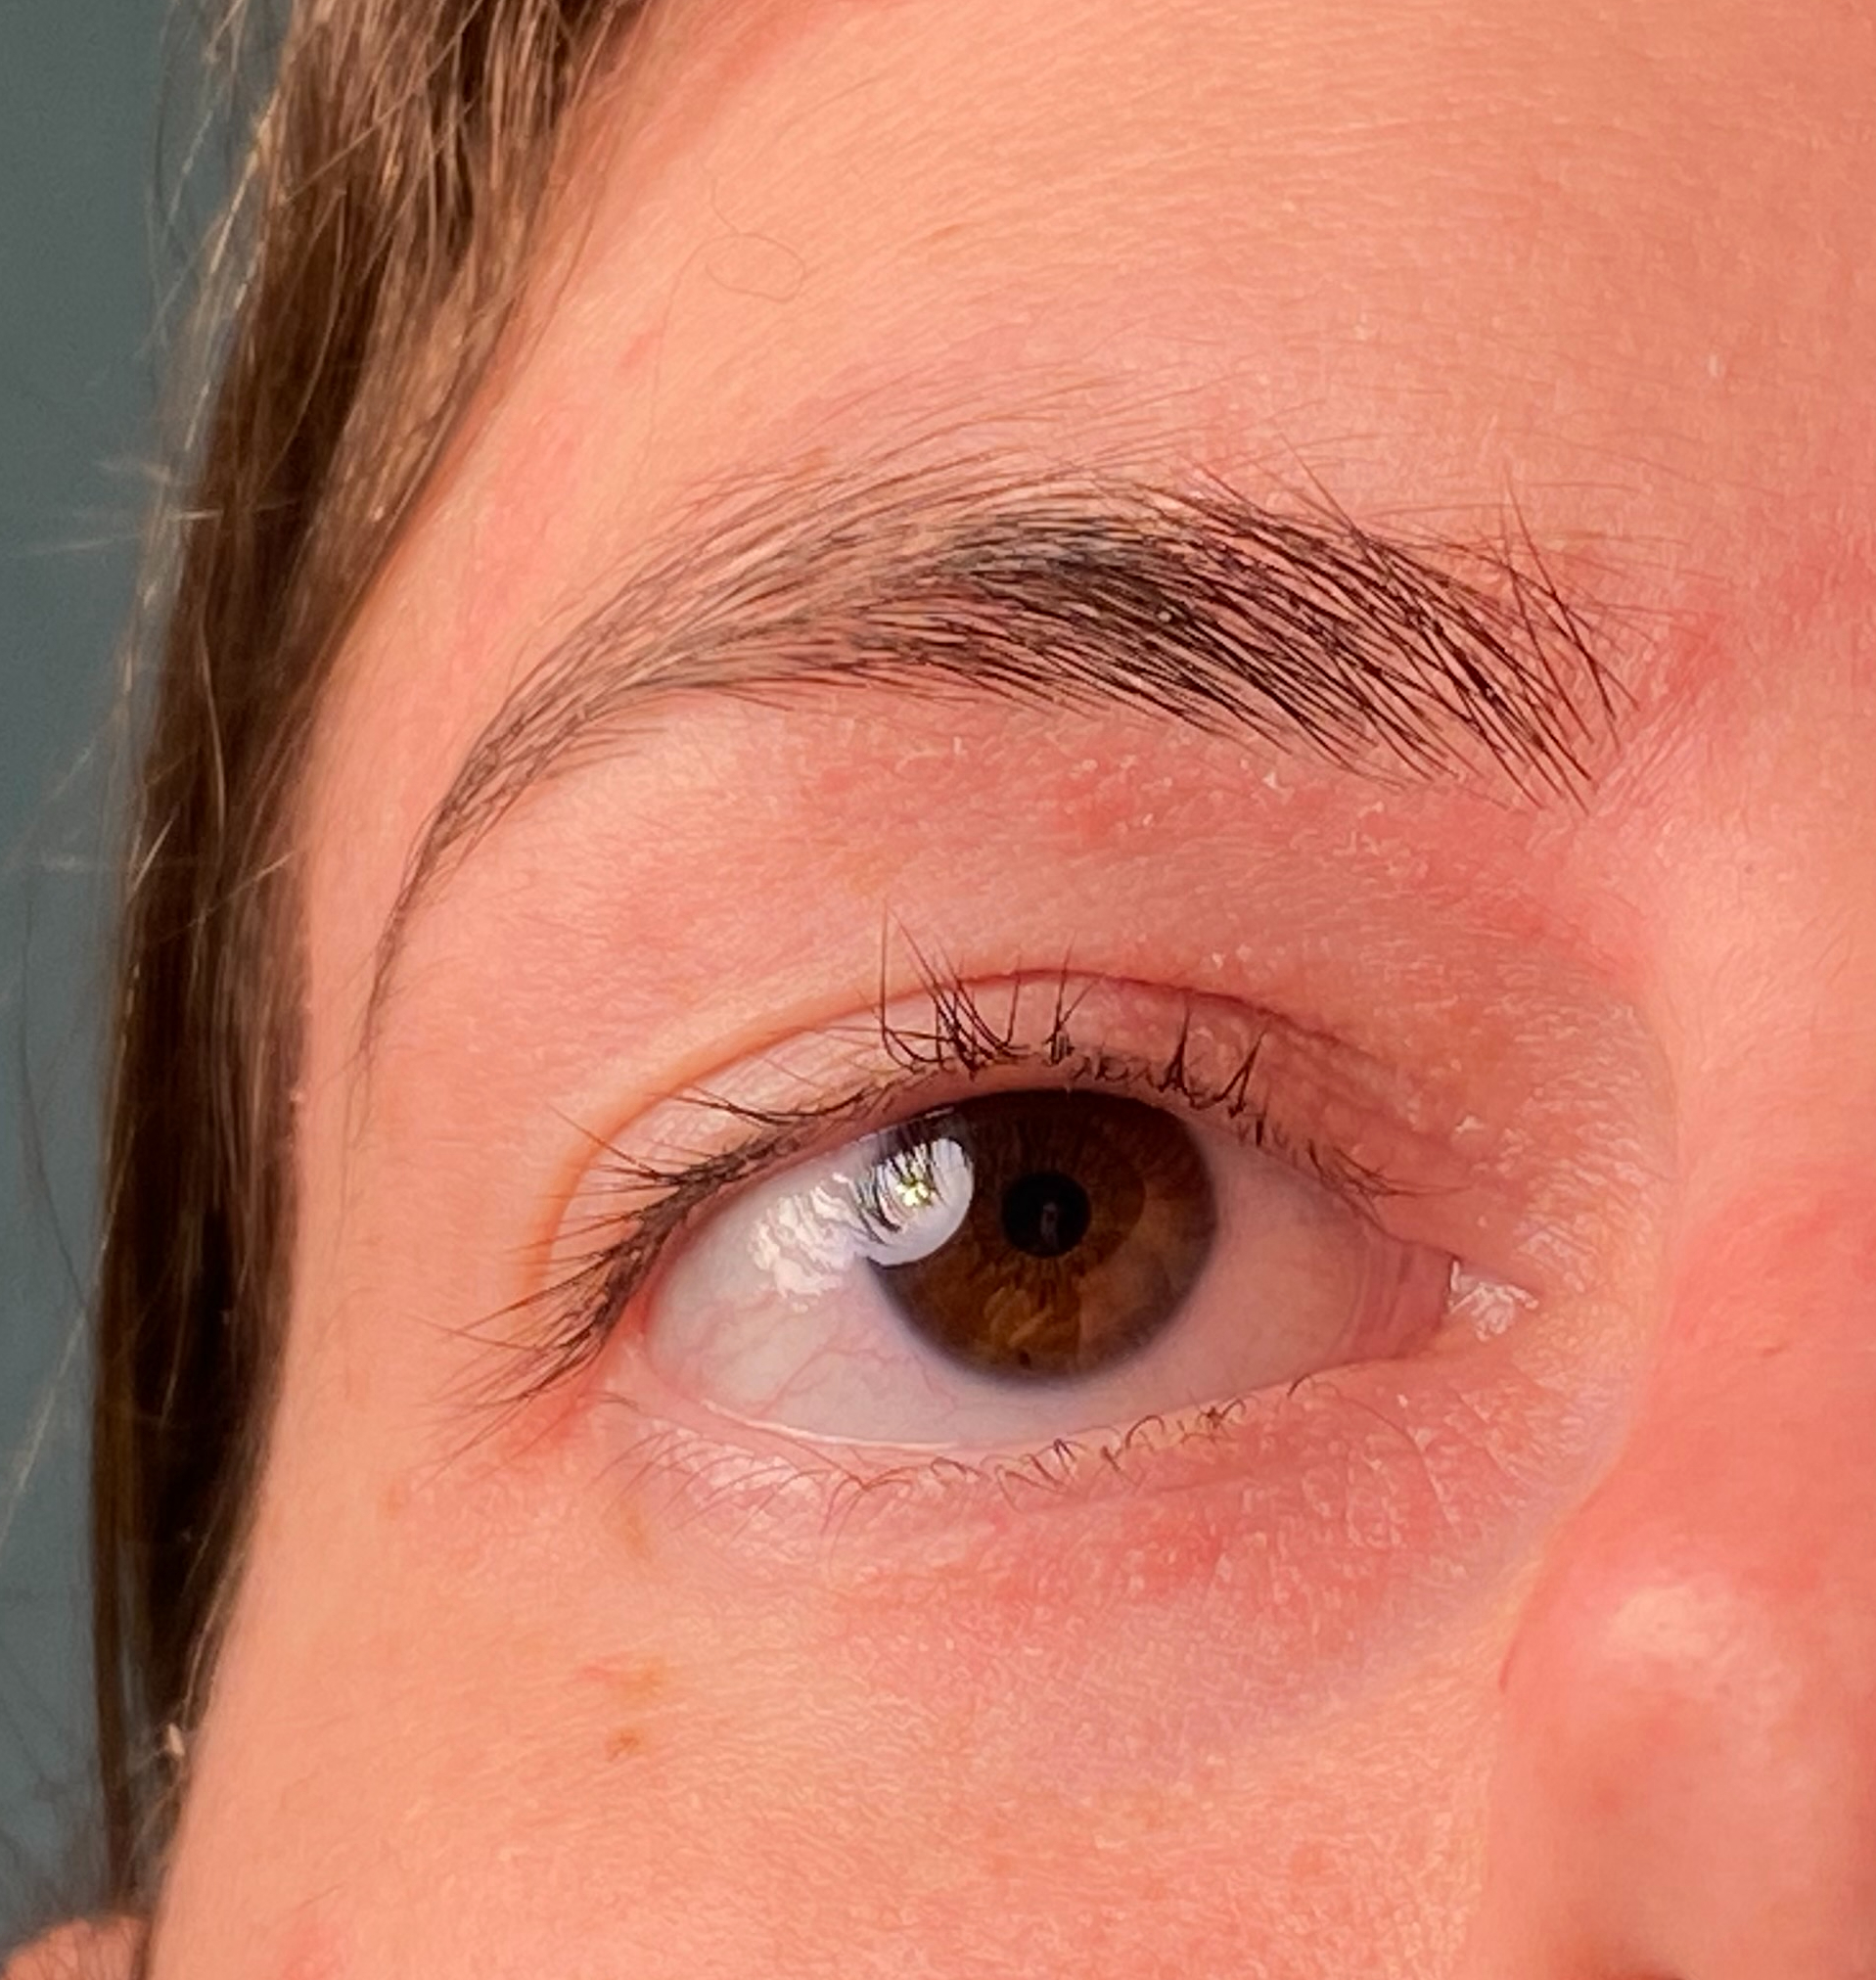 A person's brown eye and eyebrow with irritated skin